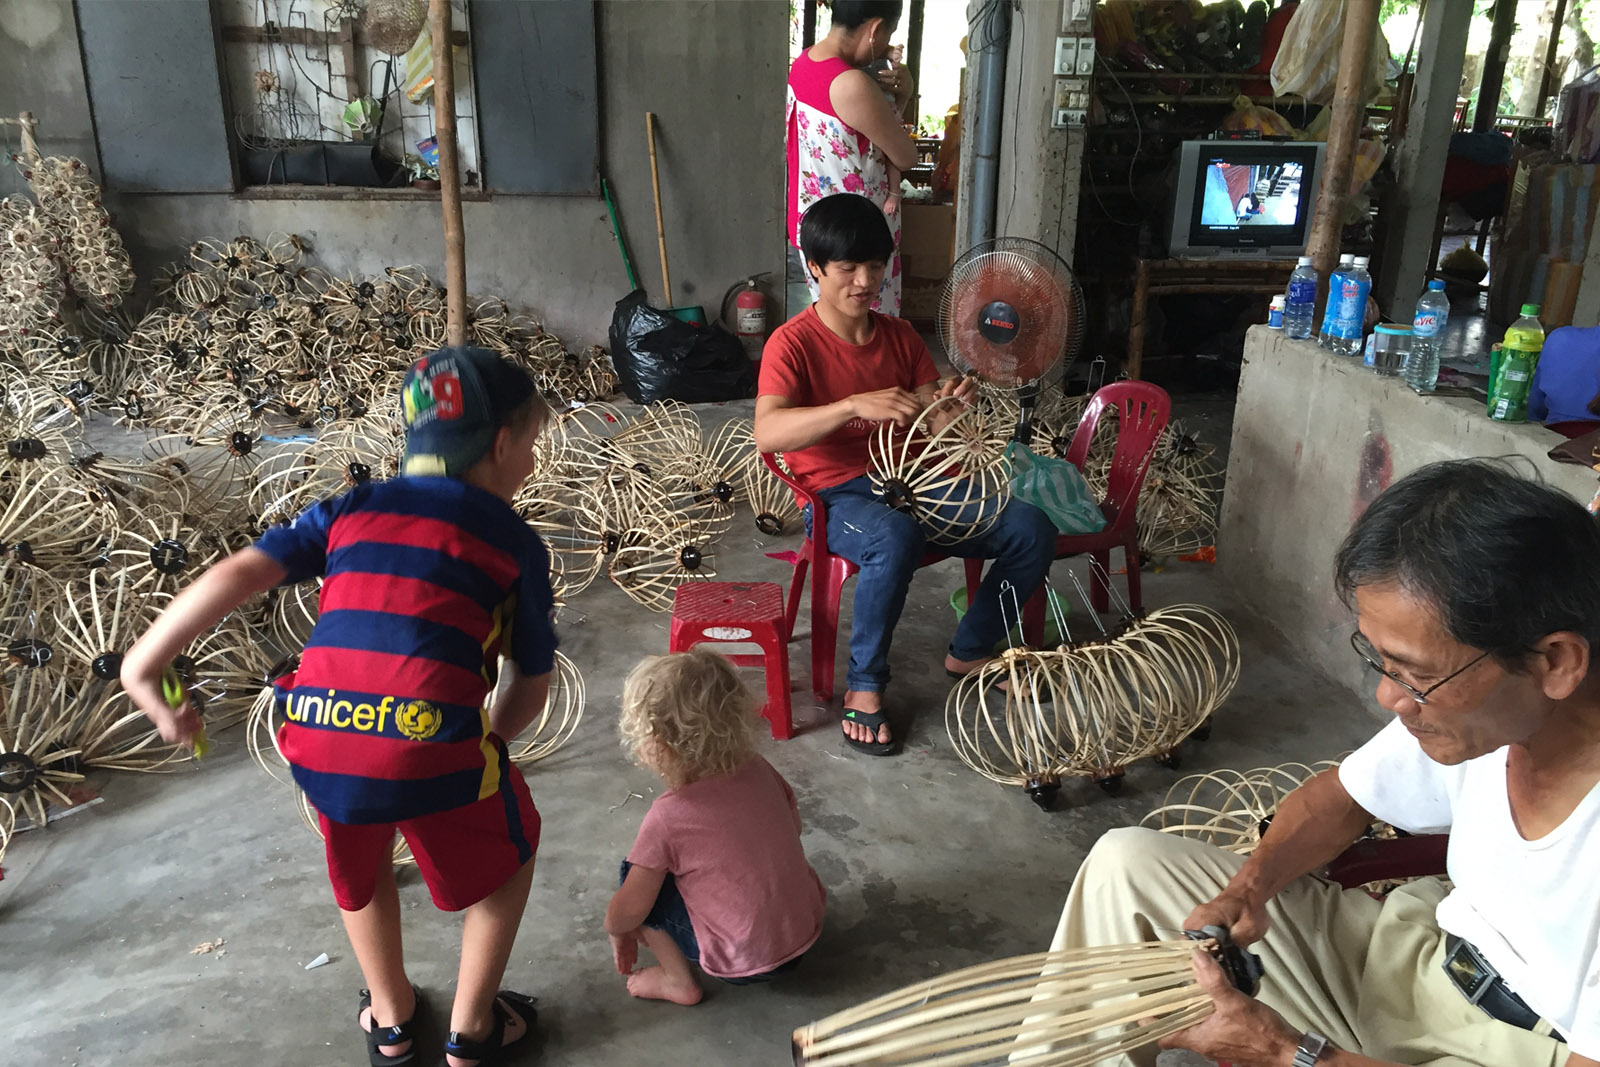 Older brother Ziggy taking Alby on a tour of the Ha Linh lantern factory, Hoi An, Vietnam